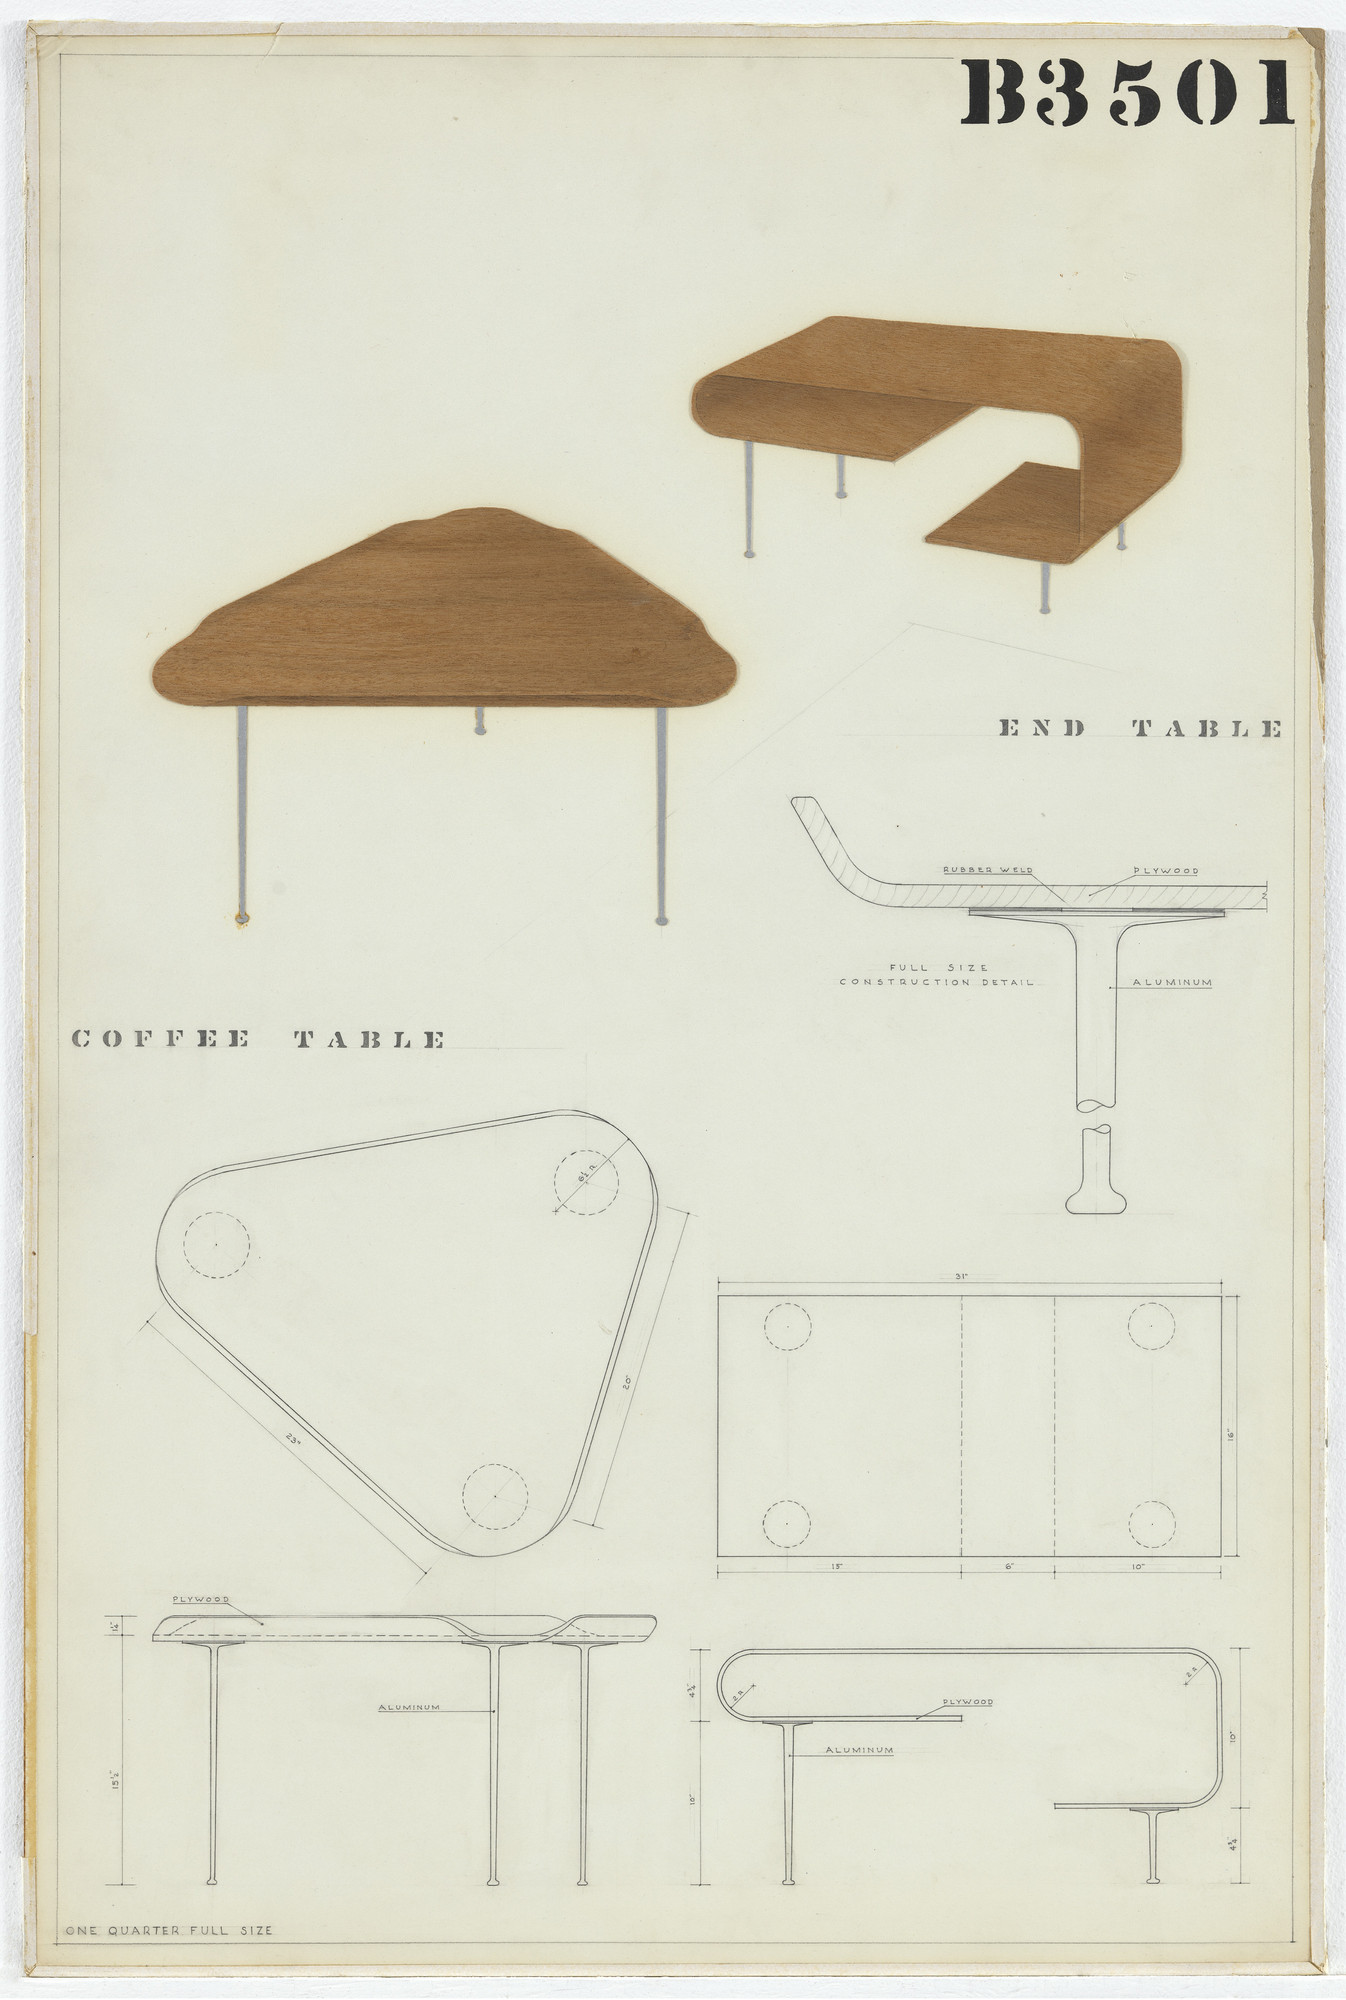 Charles Eames, Eero Saarinen. Coffee Table (Entry Panel for MoMA Competition for Organic Design in Home Furnishings). 1940